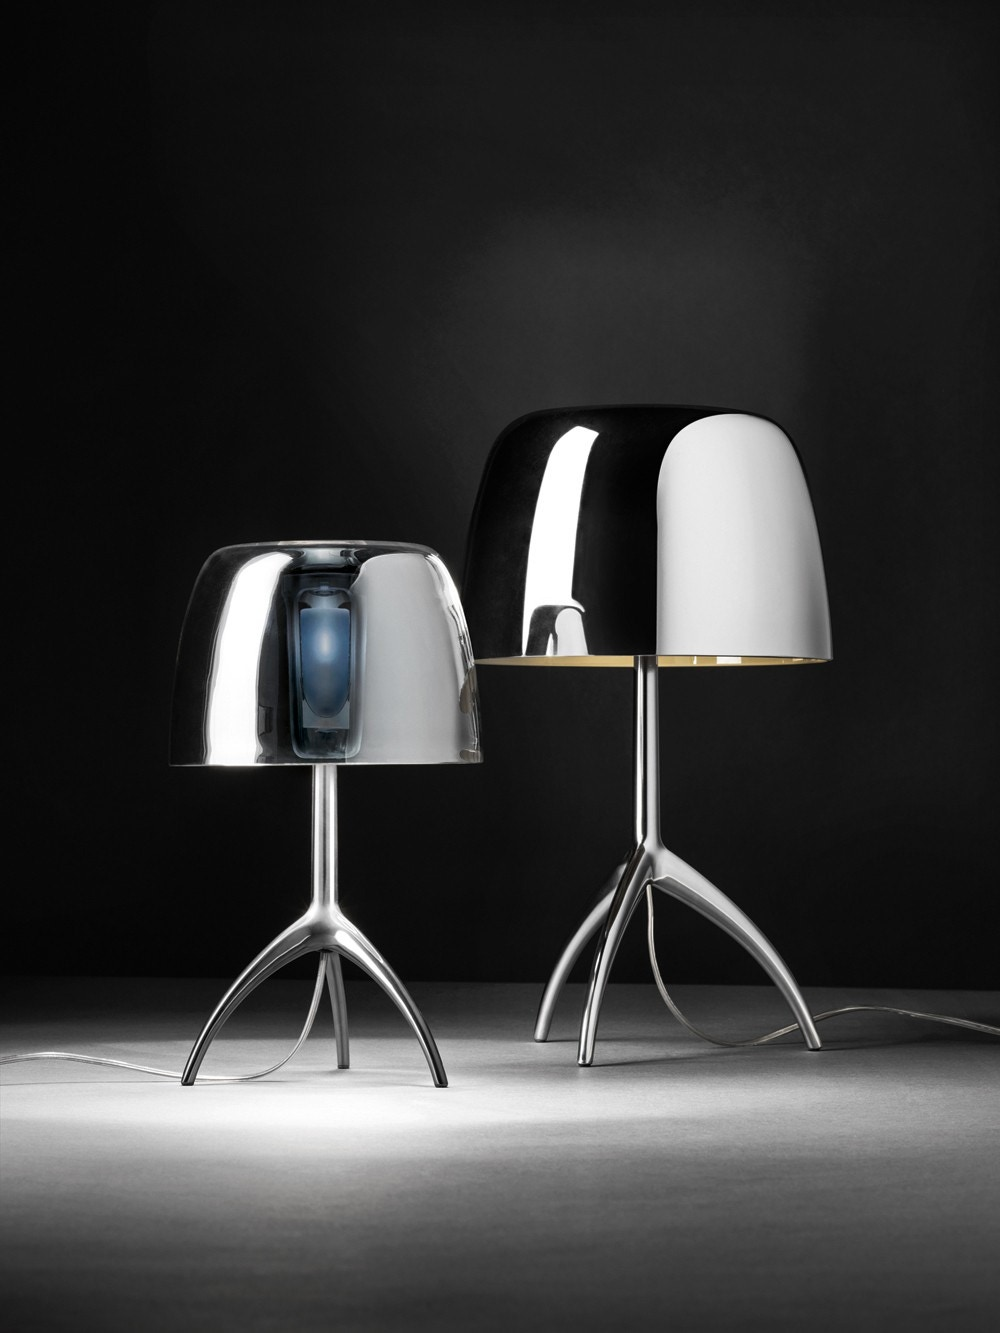 Foscarini lumiere 25th anniversary table lamp modern planet foscarini lumiere 25th anniversary table lamp 1 geotapseo Image collections